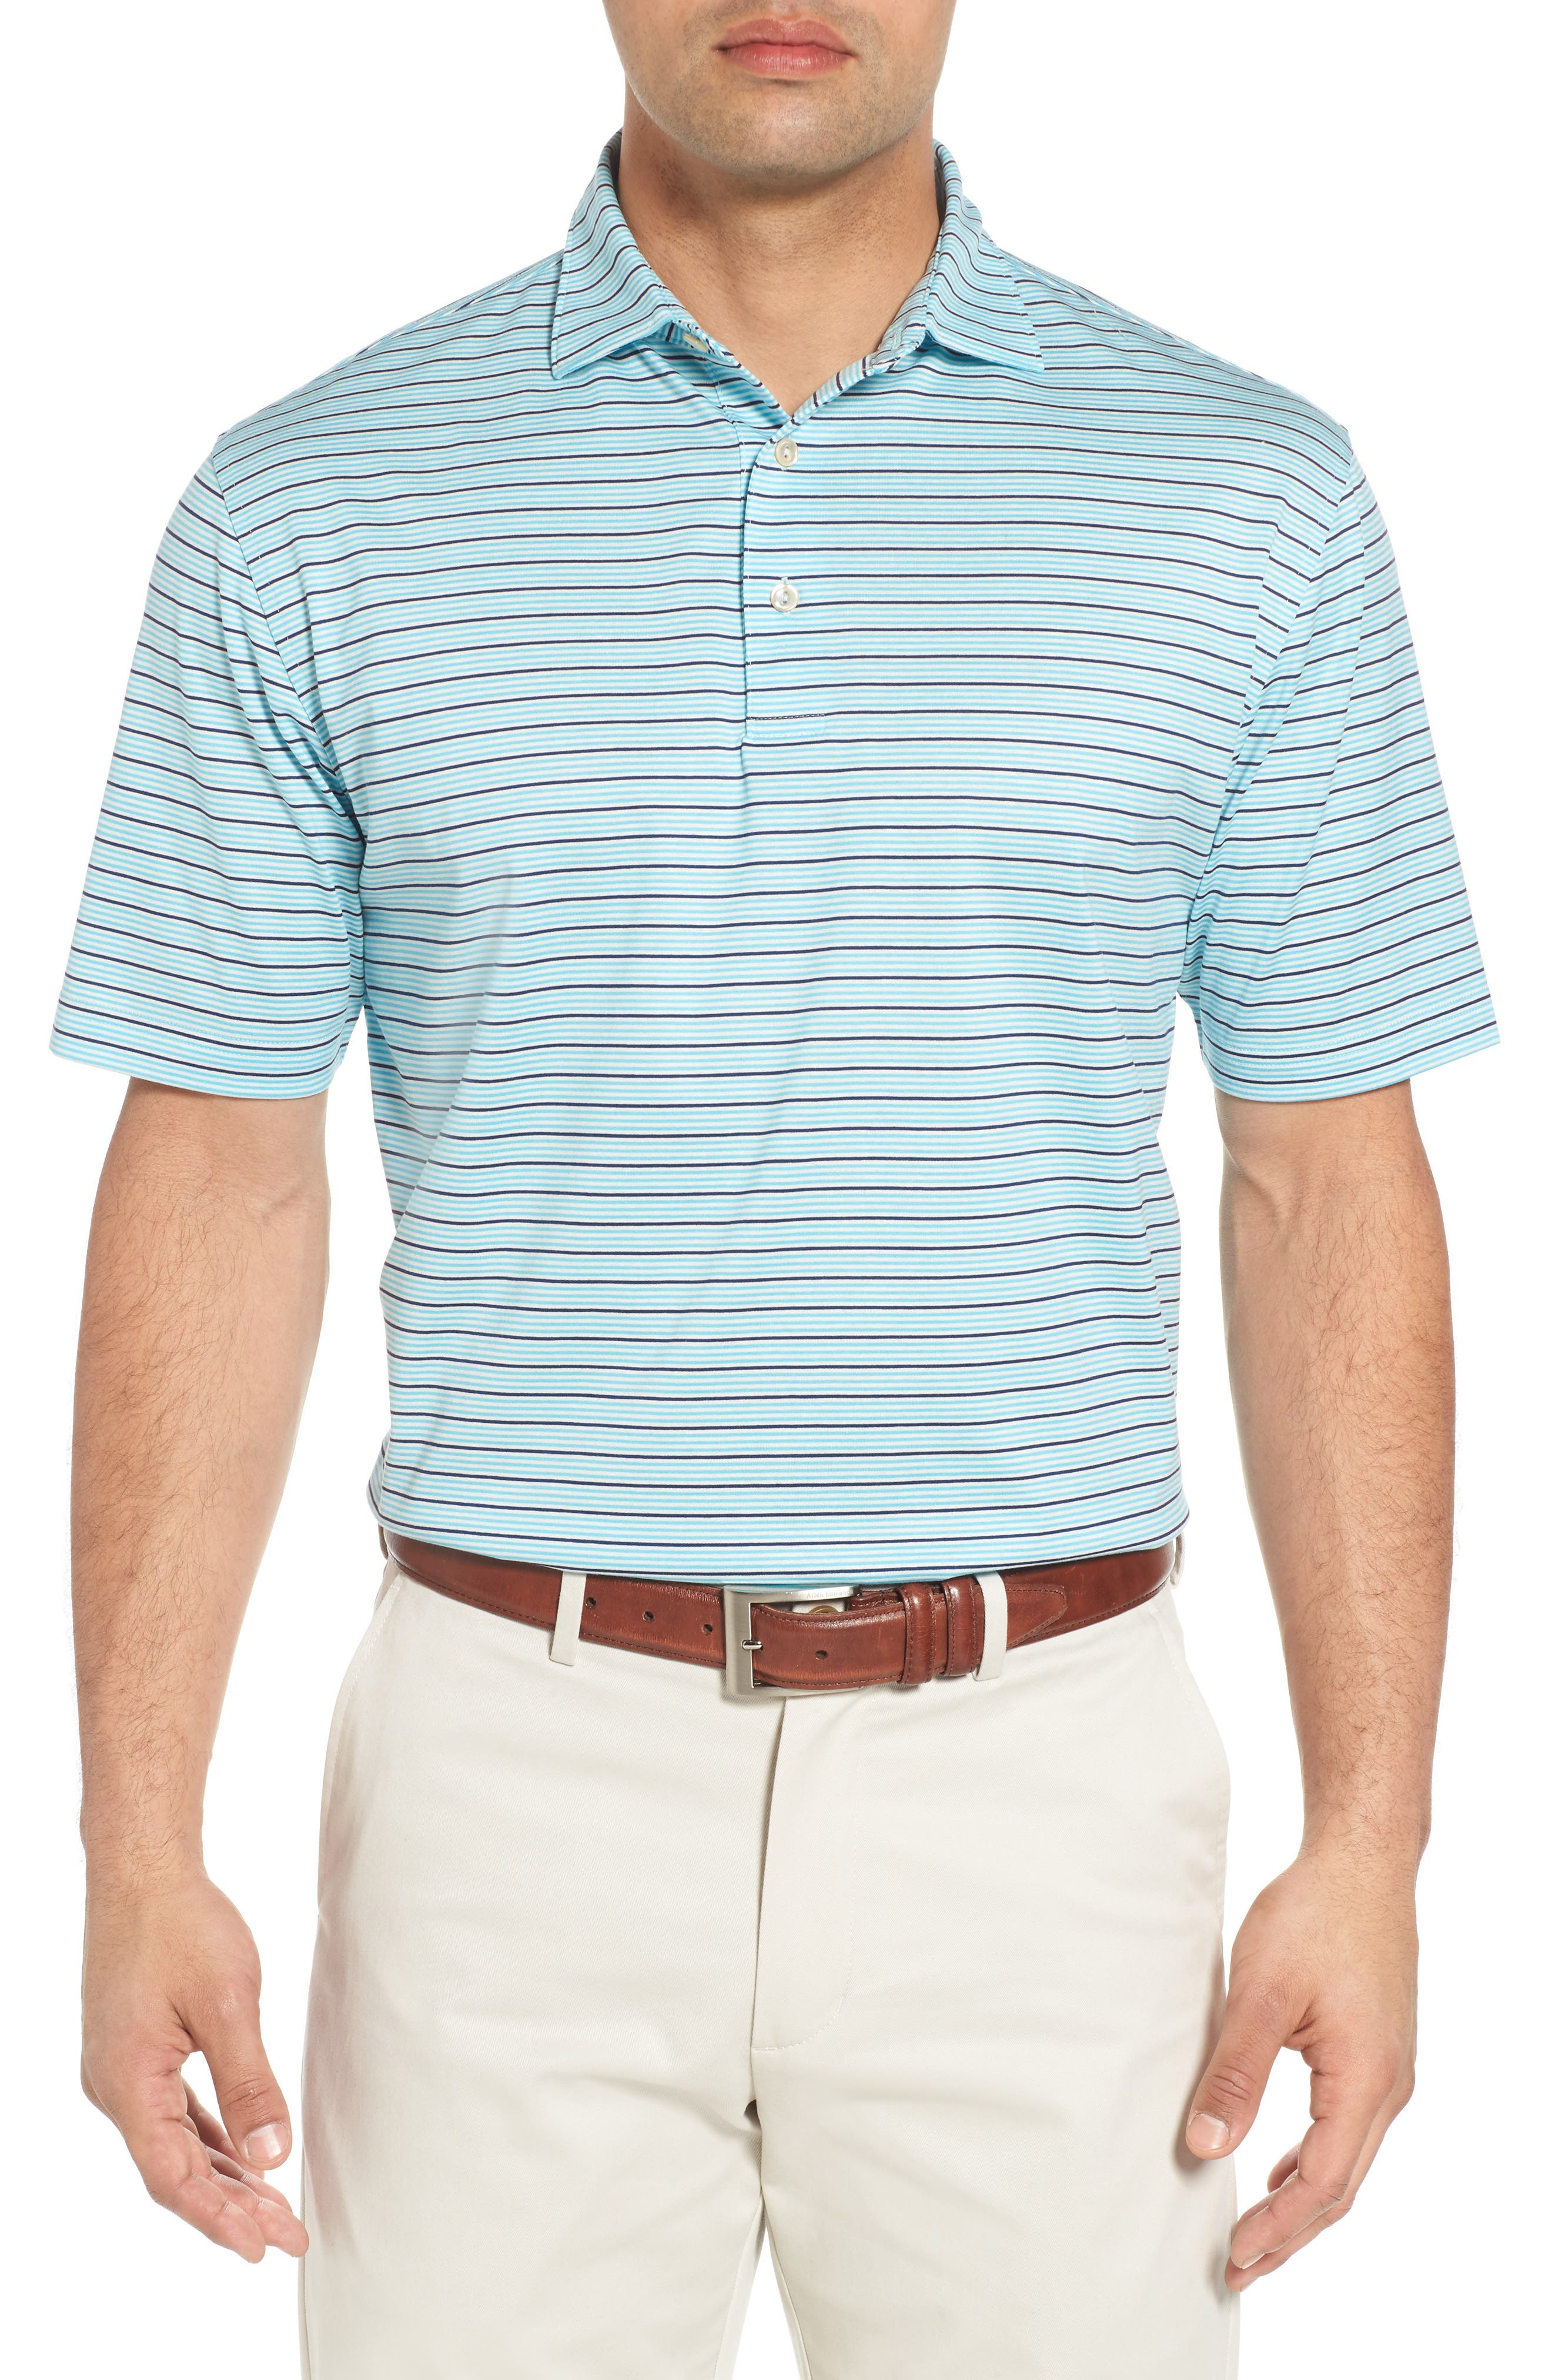 Alternate Image 1 Selected - Peter Millar Grandview Sean Stripe Nanoluxe Polo